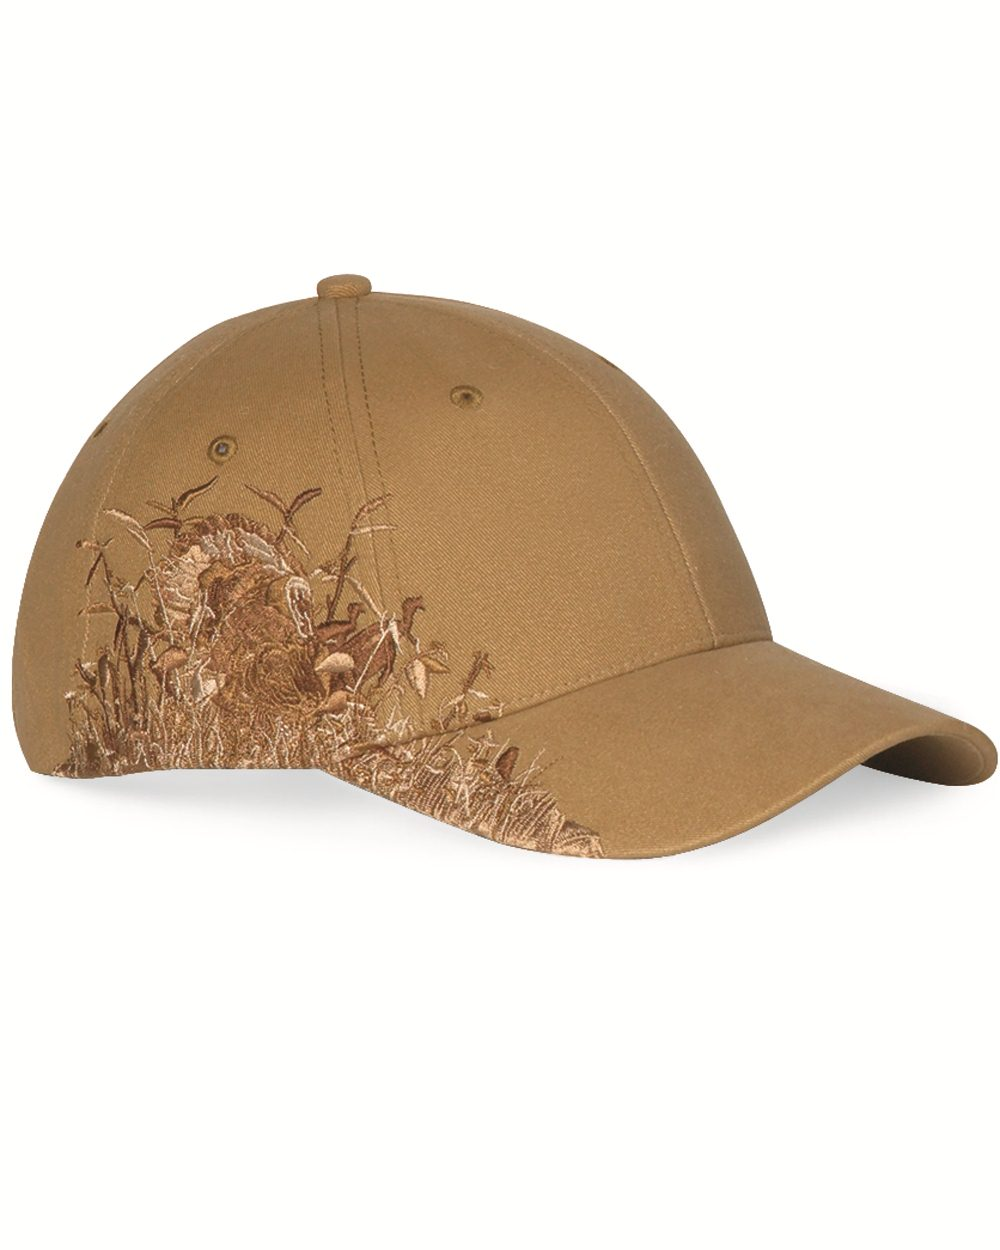 DRI DUCK Wildlife Series Turkey Cap - 3258